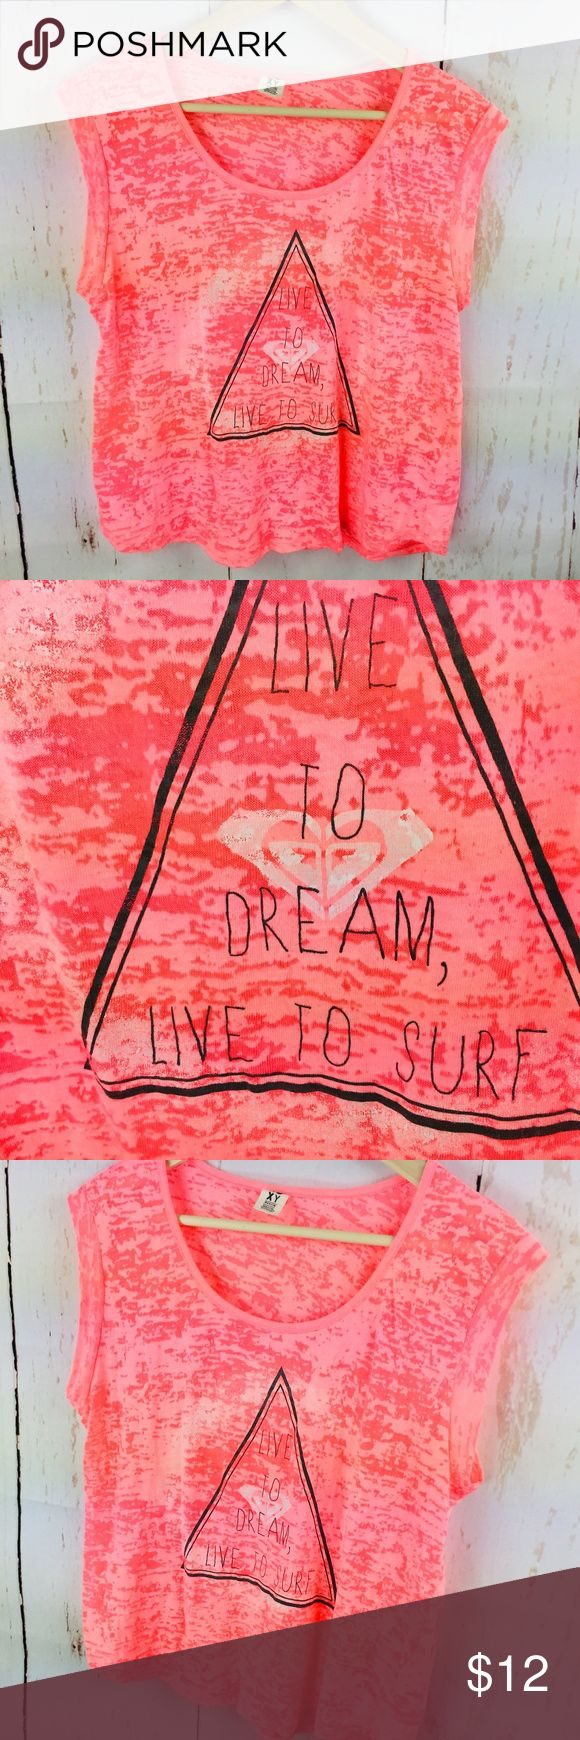 """ROXY Live to Dream Live to Surf Top ROXY Size Medium Tee  Live to Dream Live to Surf Pink  Measurements Laying Flat (approximate) Bust: 20"""" Length: 22  60% Cotton, 40% Polyester  Gently used with no flaws found  U-3 Roxy Tops Tees - Short Sleeve"""